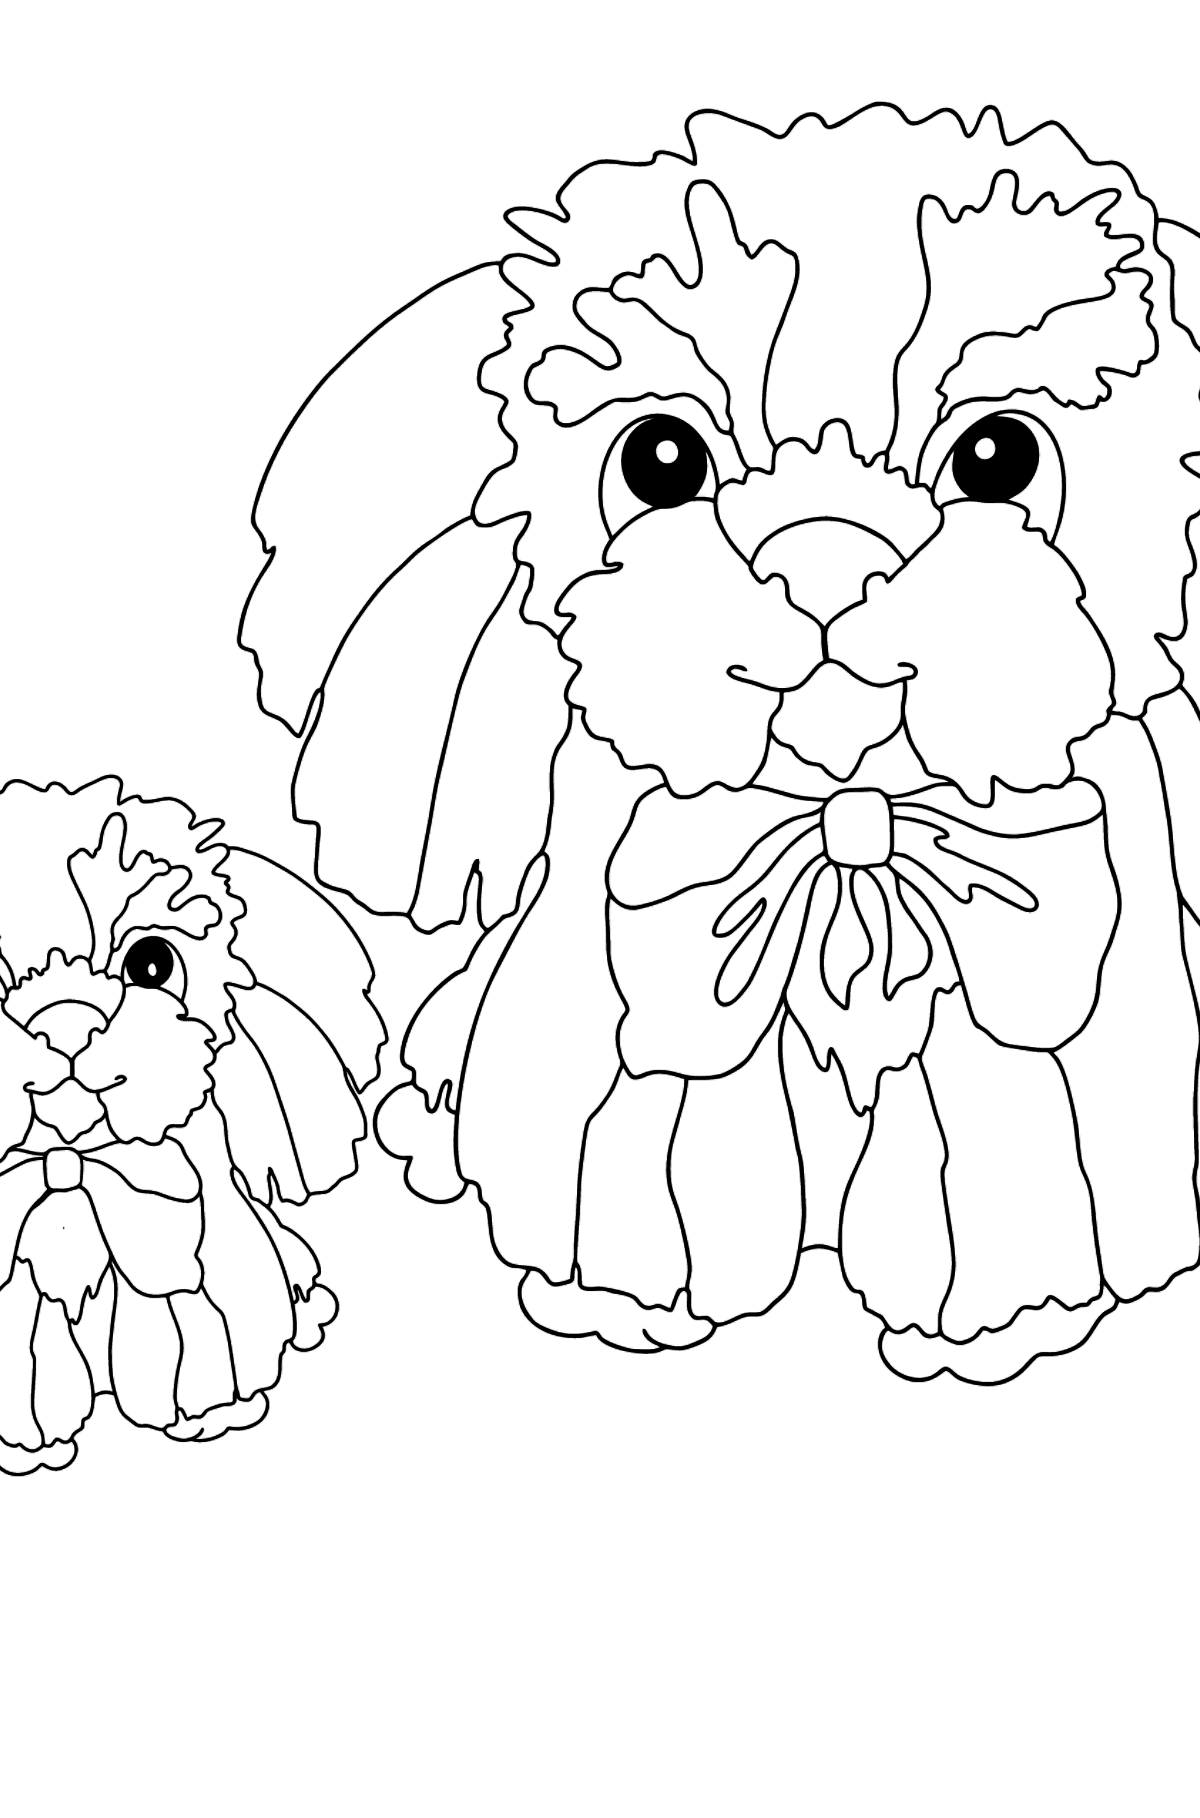 Coloring Page - A Puppy with Its Mom - Coloring Pages for Kids